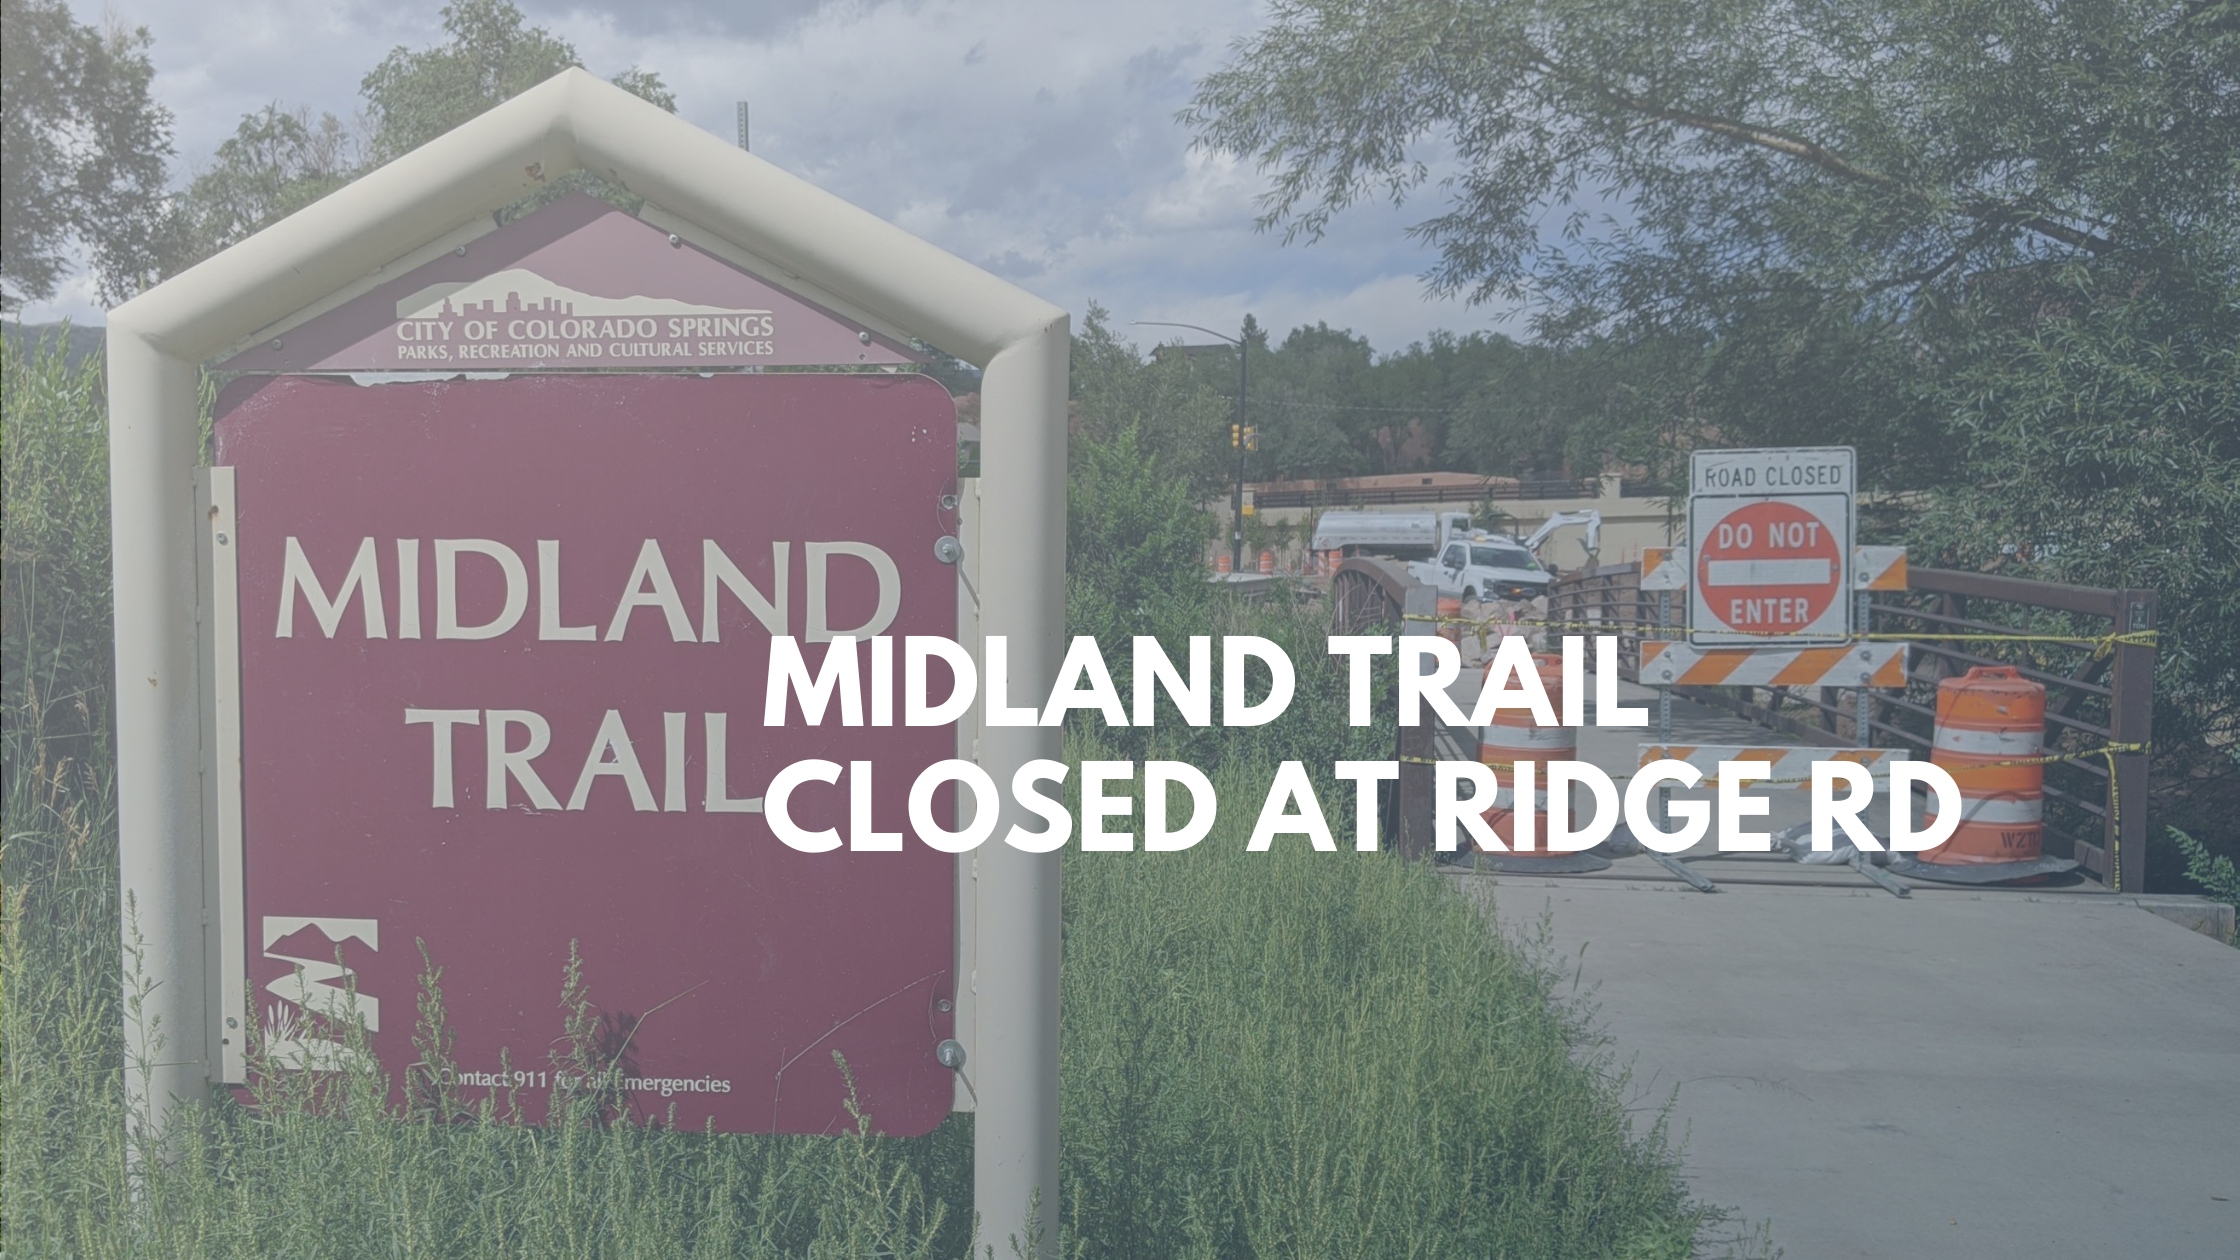 Midland Trail Closed